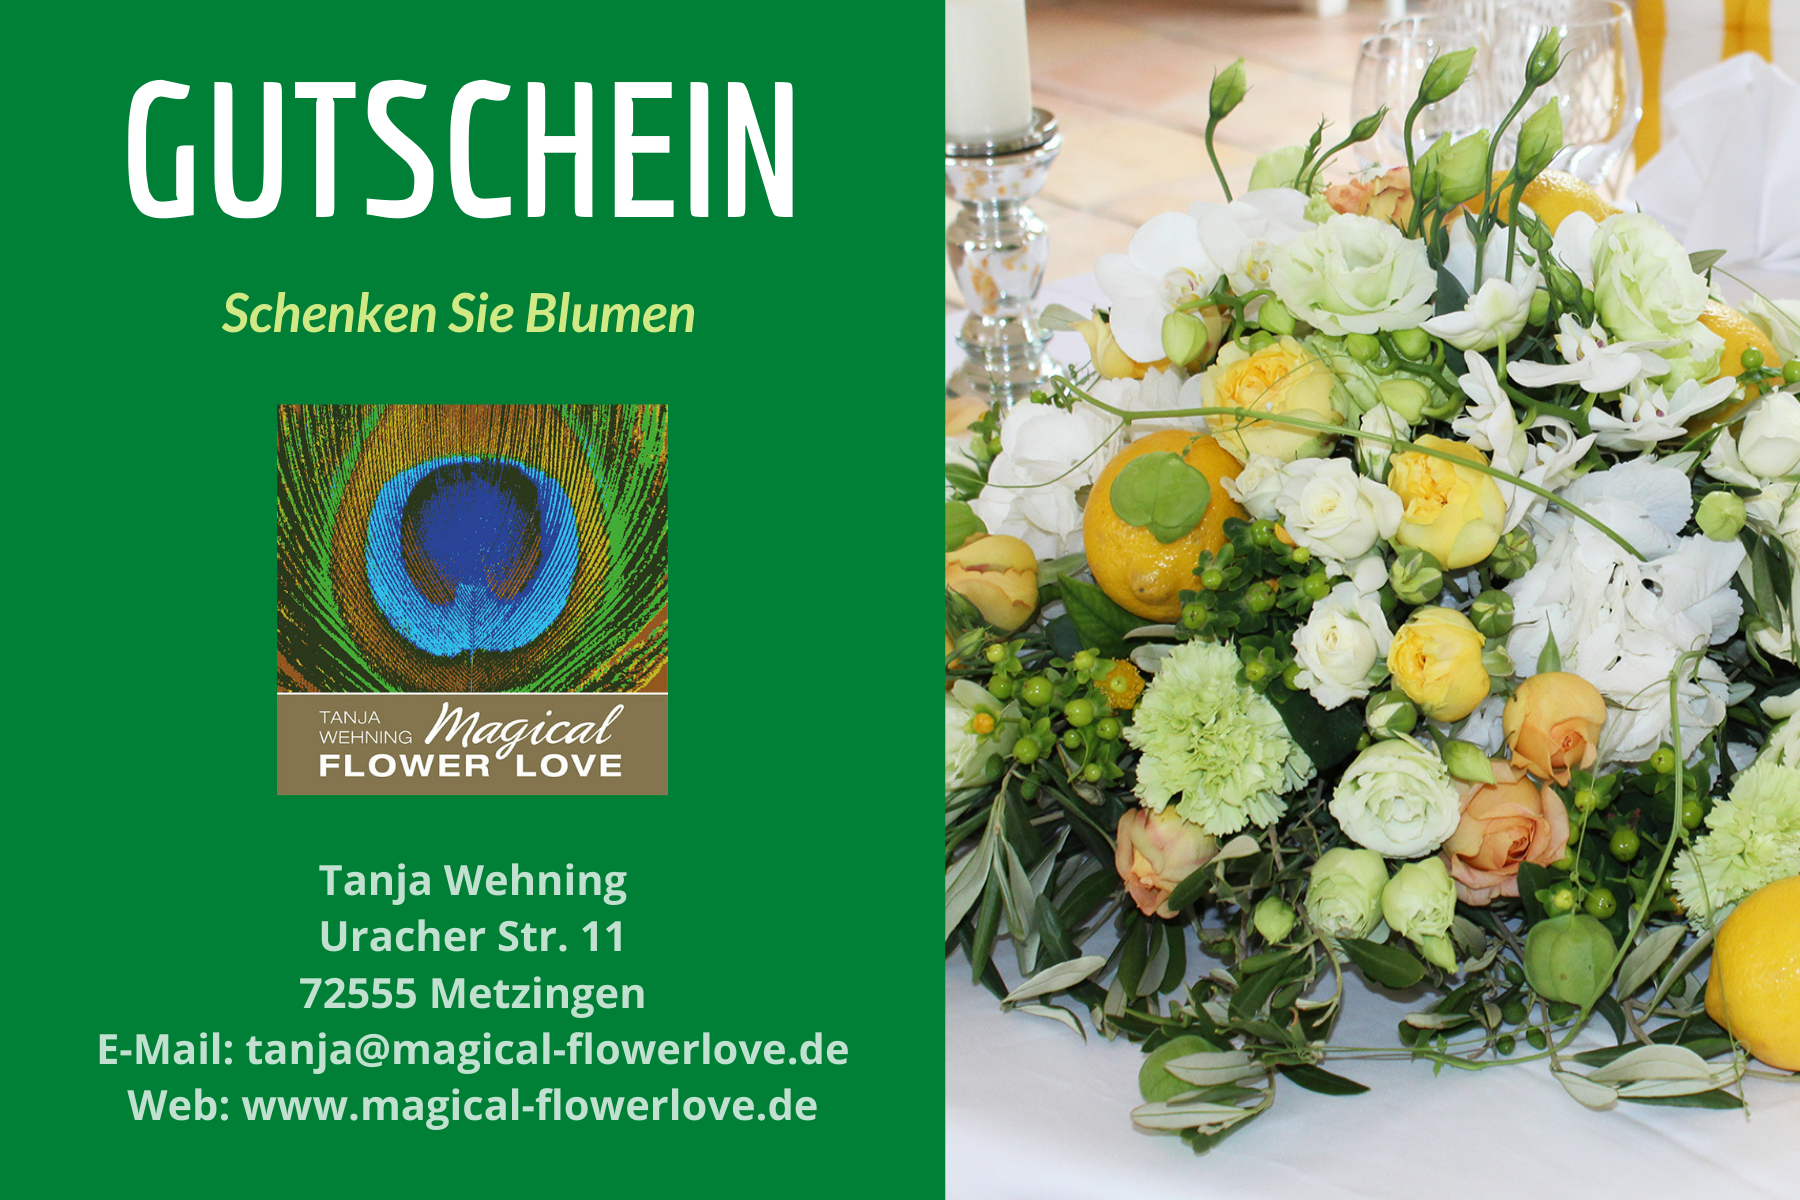 Gutschein-magical-flower-love-3